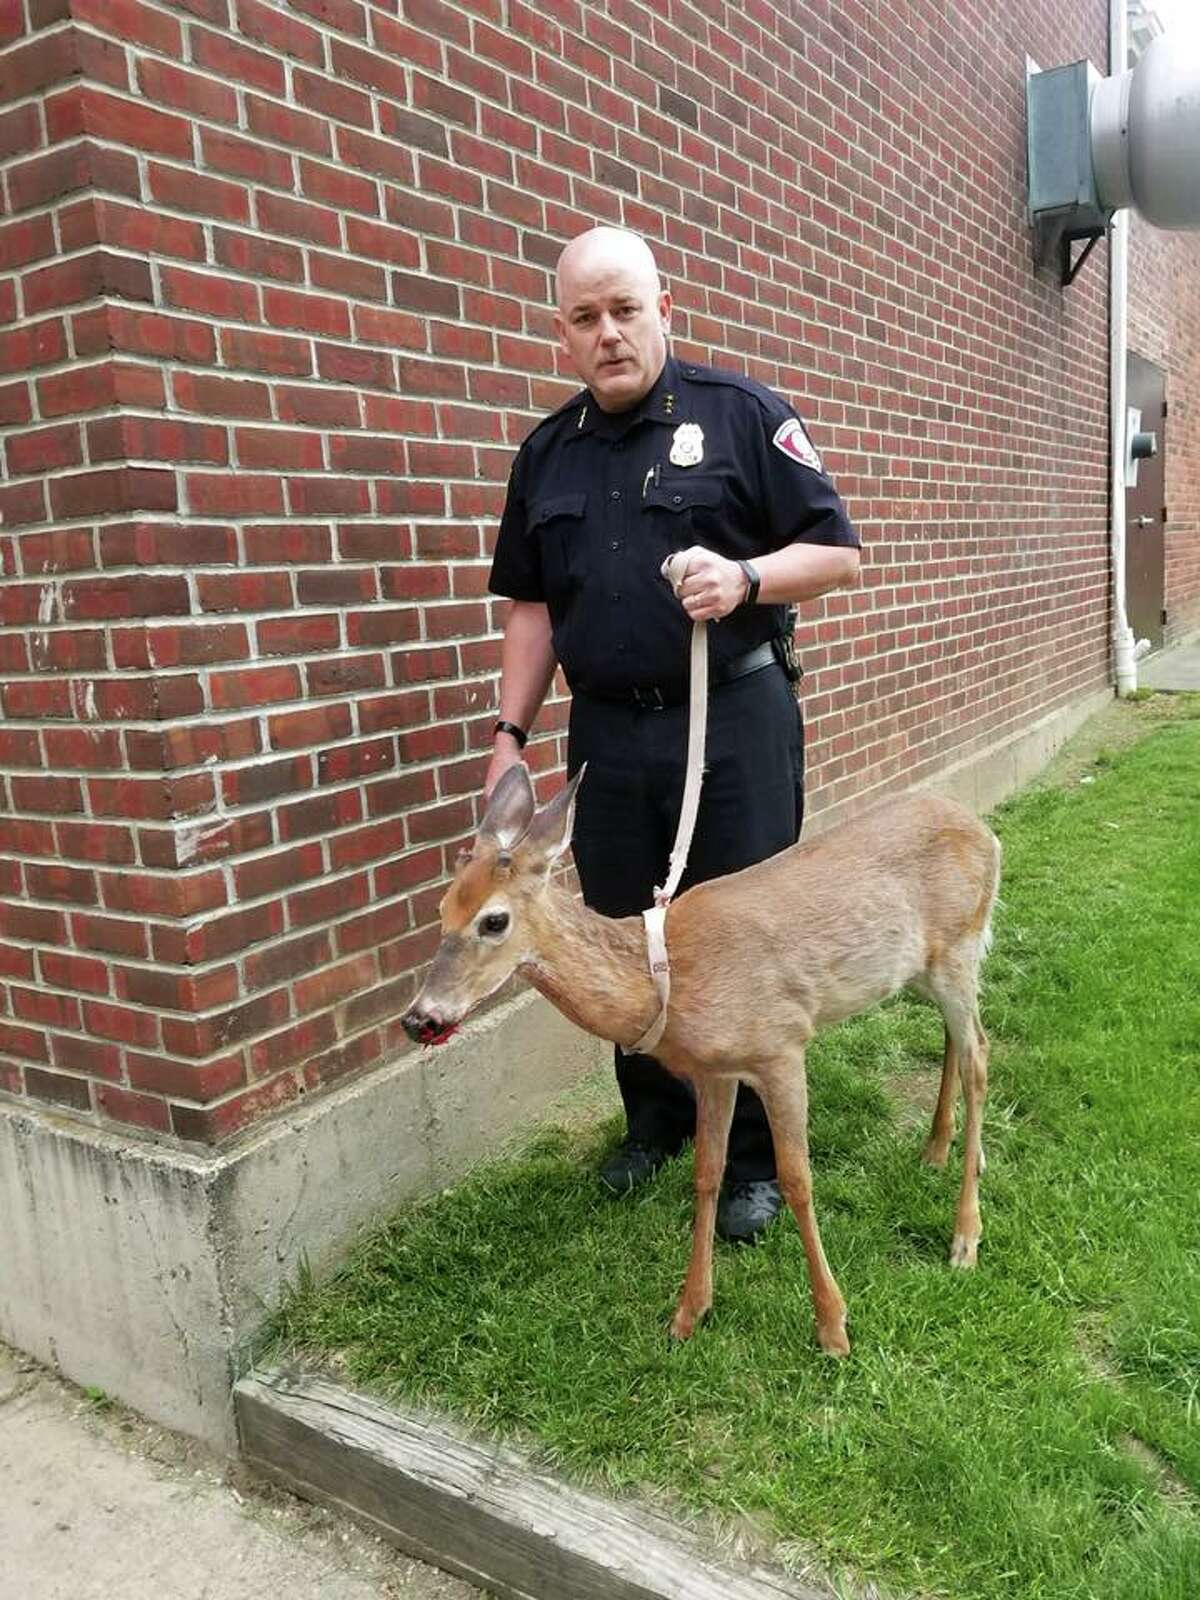 Watervliet Police Chief Mark Spain with an injured deer on May 22, 2018.